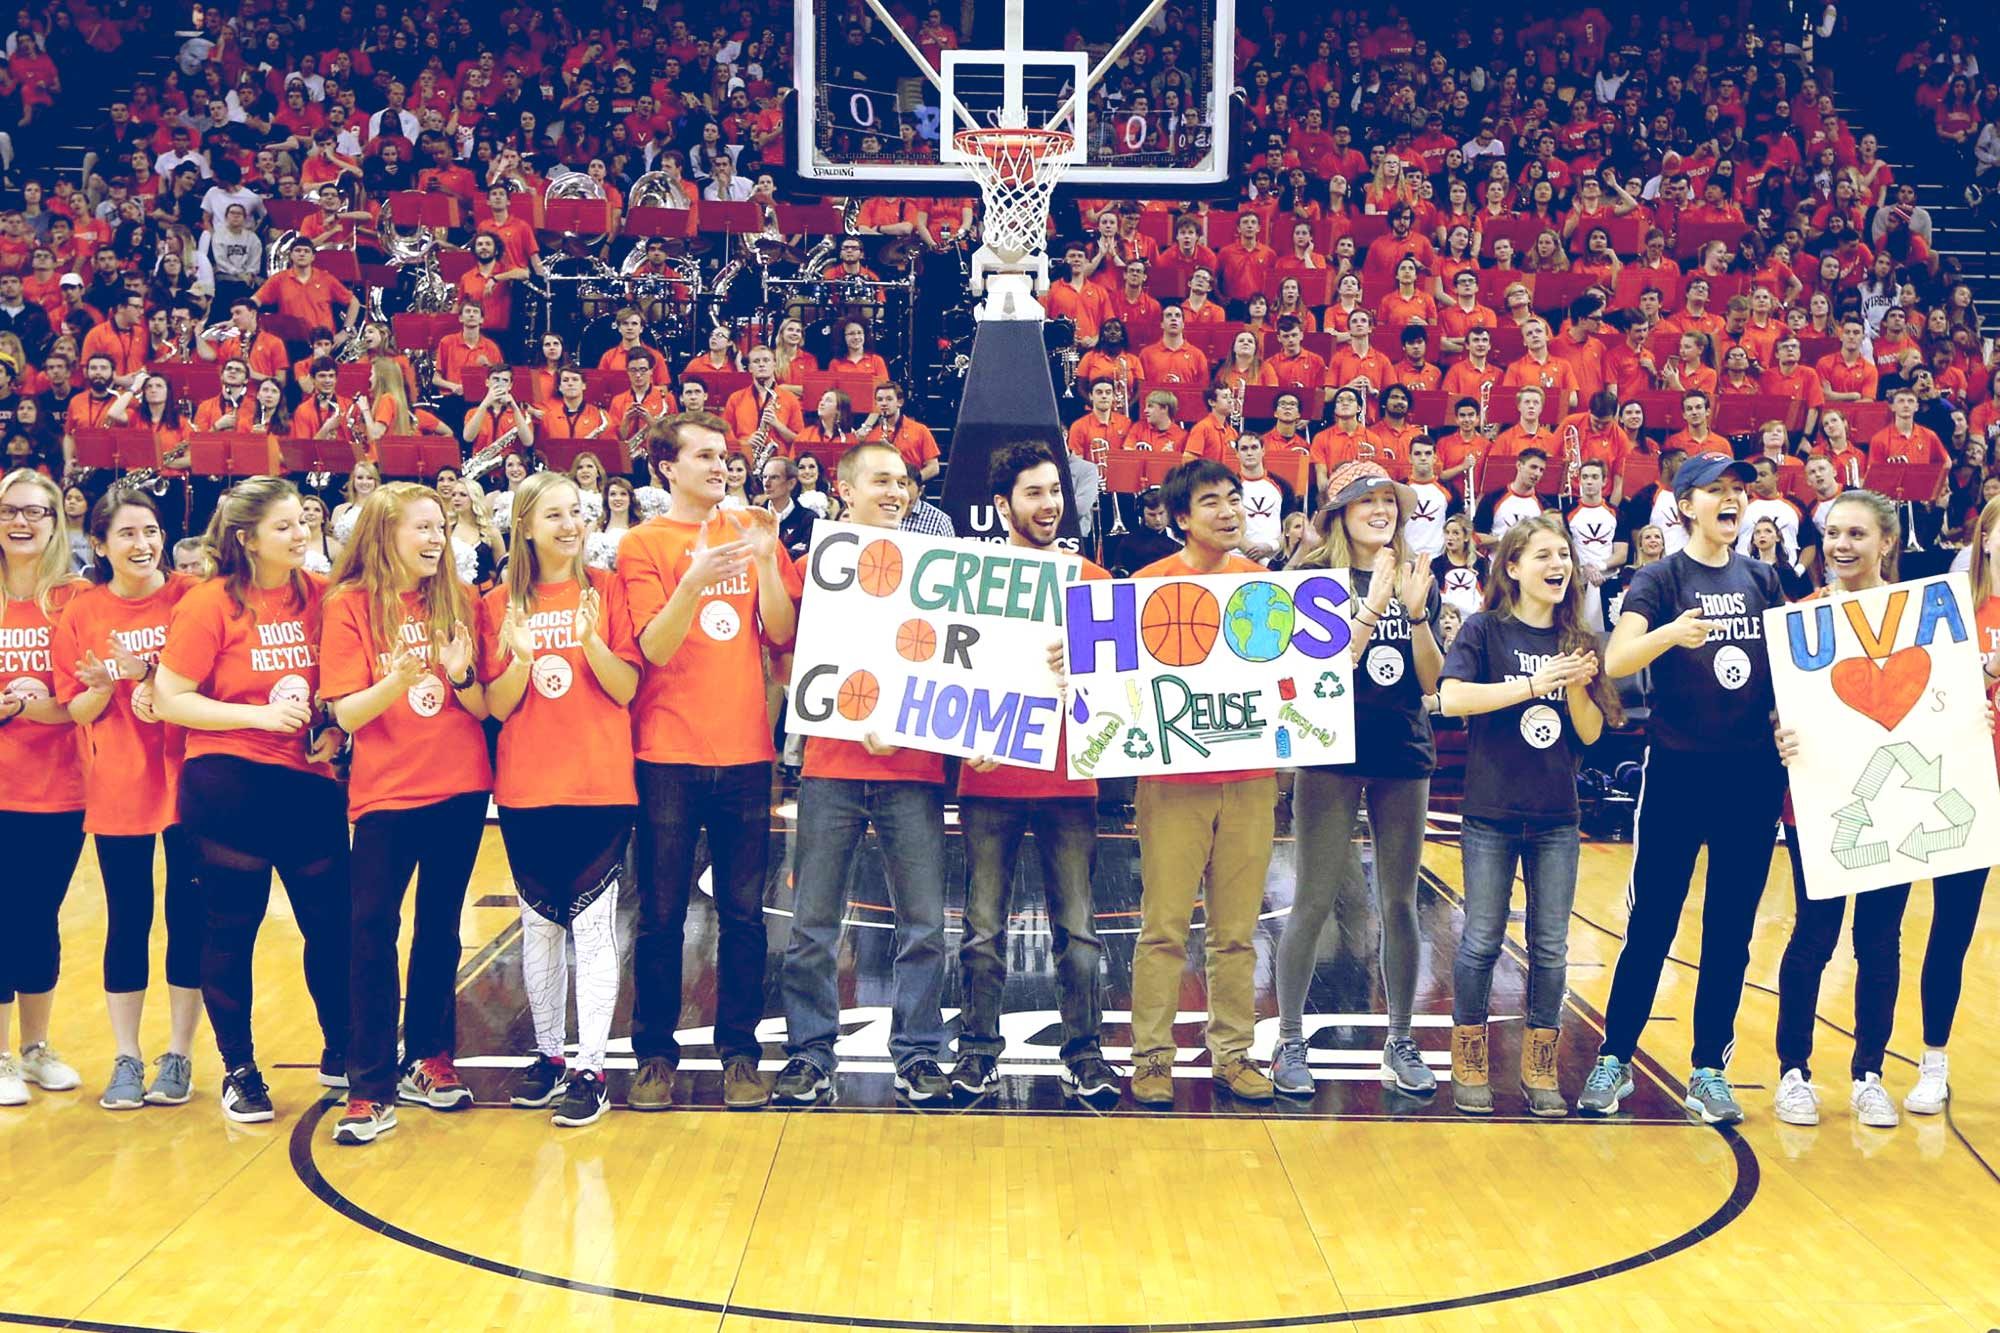 With the aid of student volunteers, UVA basketball fans diverted more than 90 percent of their game-day waste from the landfill. (Photo by Matt Riley, UVA Athletics)